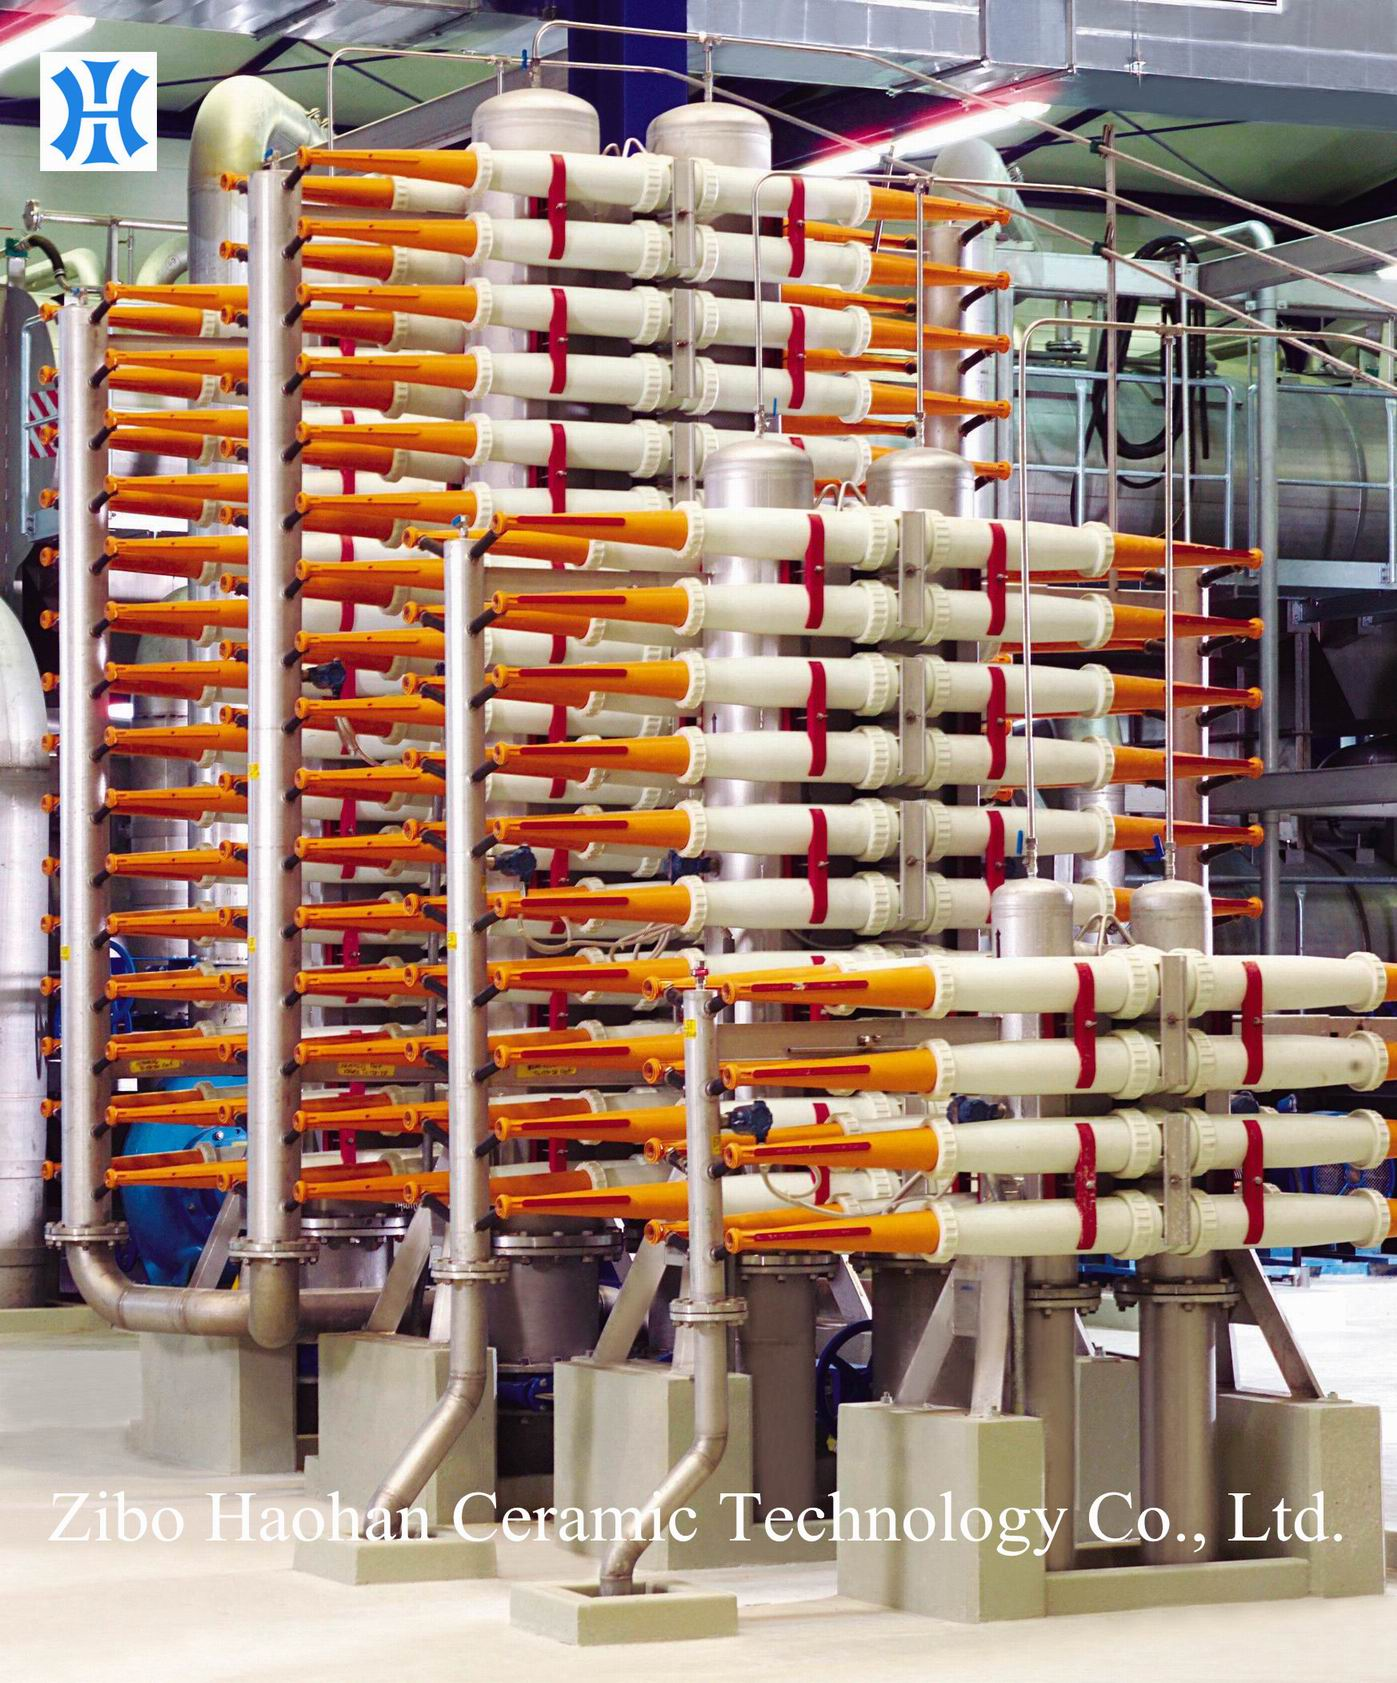 Centri Cleaner System for Paper Mill